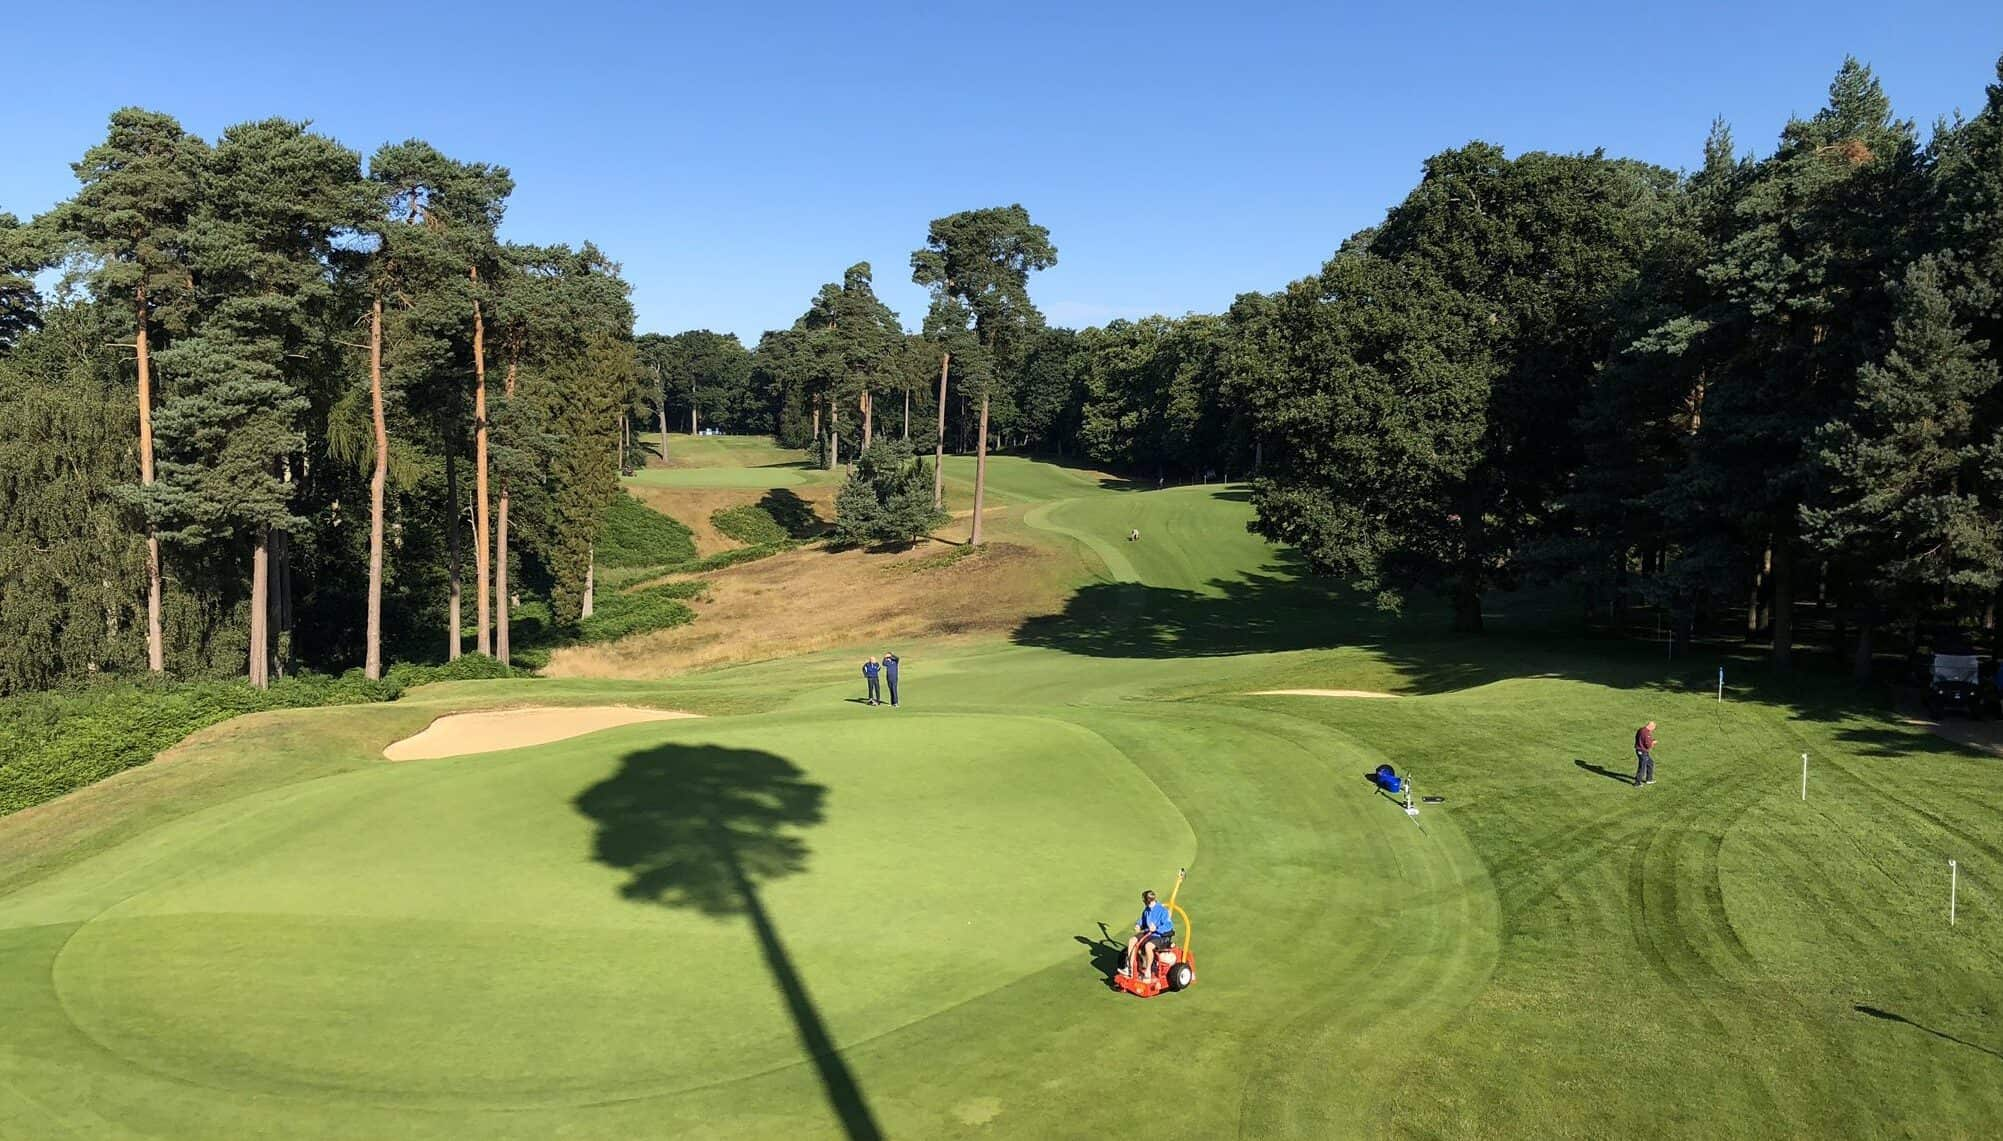 The 7th hole on Woburn's Marquess course